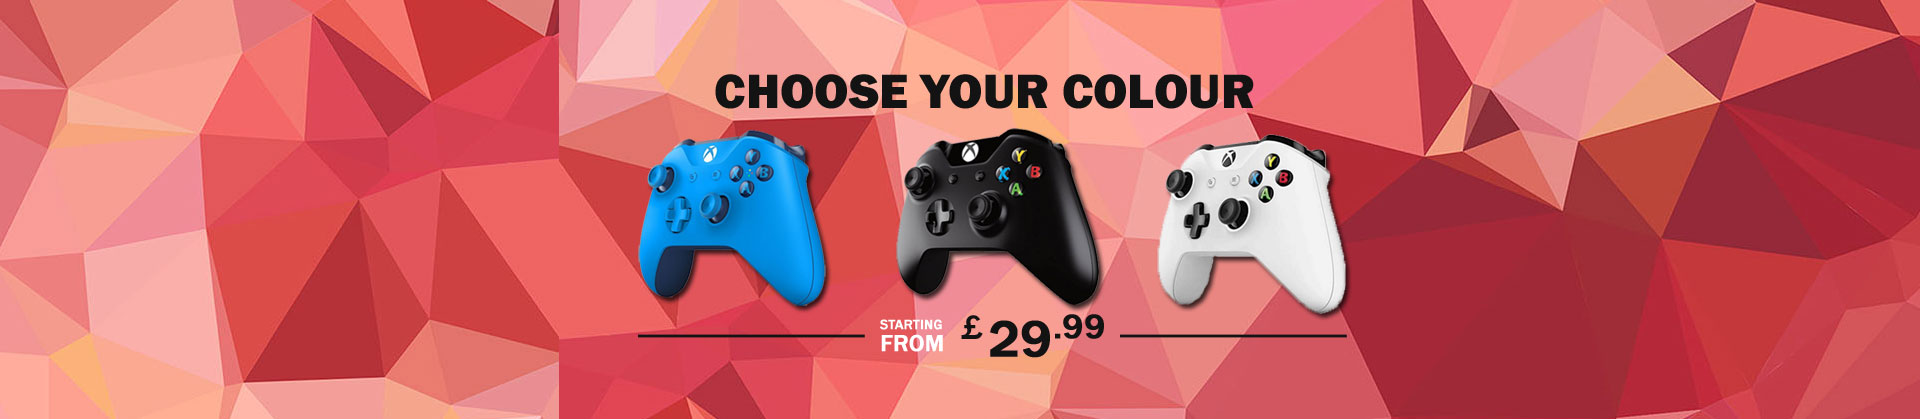 Xbox One Wireless Game Controllers starting from £29.99